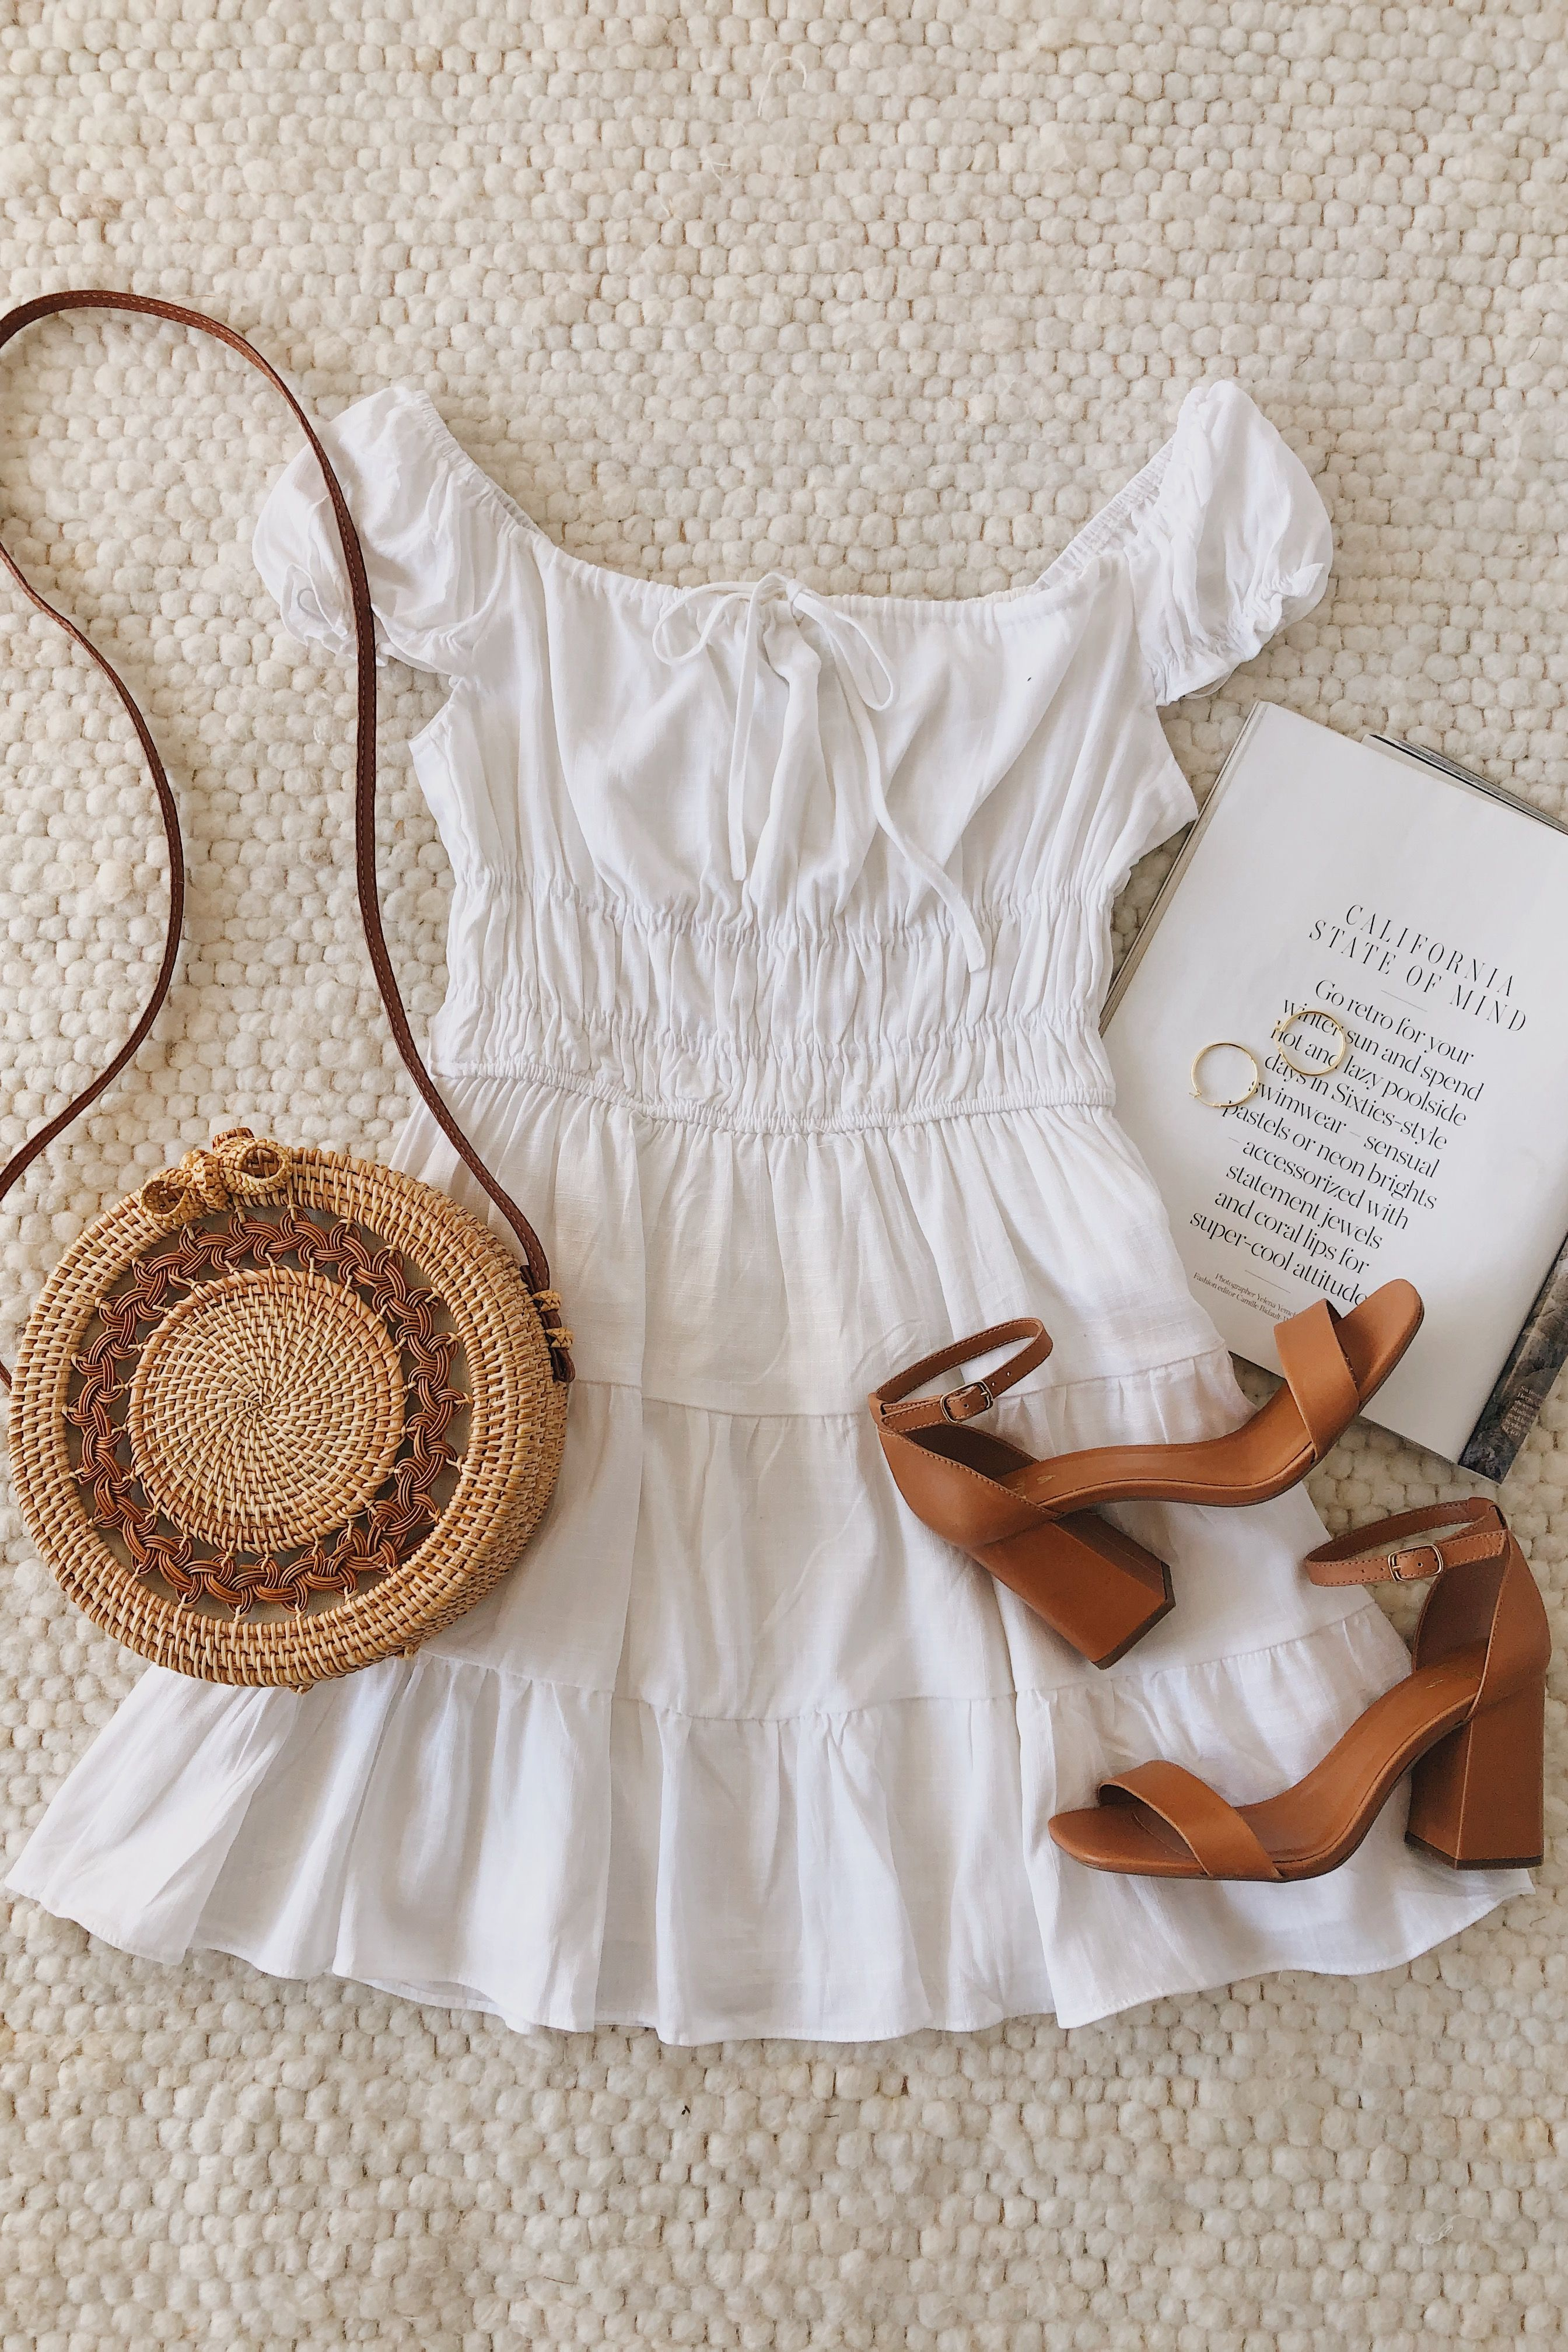 Good As New White Cap Sleeve Tiered Mini Dress Mini Dress Outfits Fashion Cute Casual Outfits [ 4032 x 2688 Pixel ]